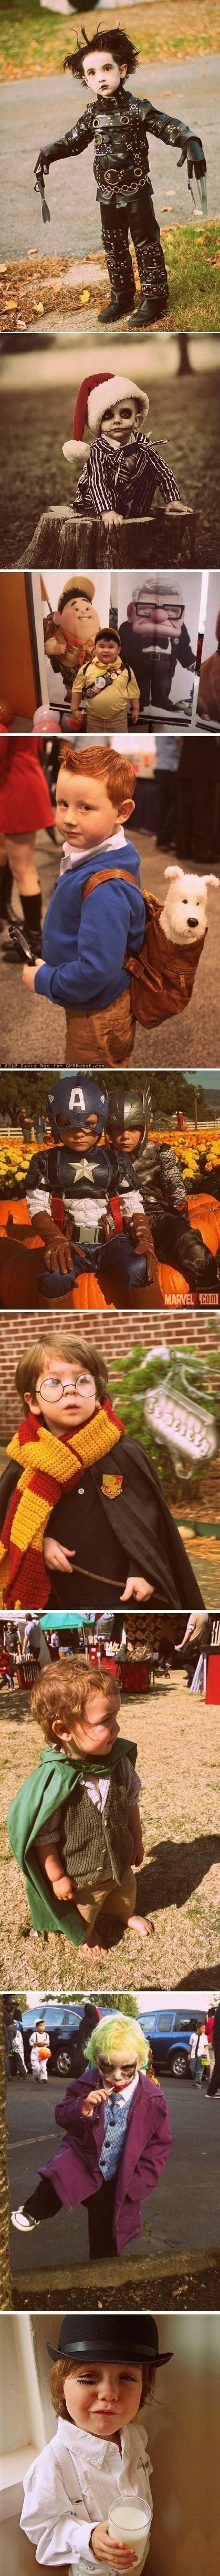 Kid Halloween costumes.... Cute!  So sad the boys are too old for these!